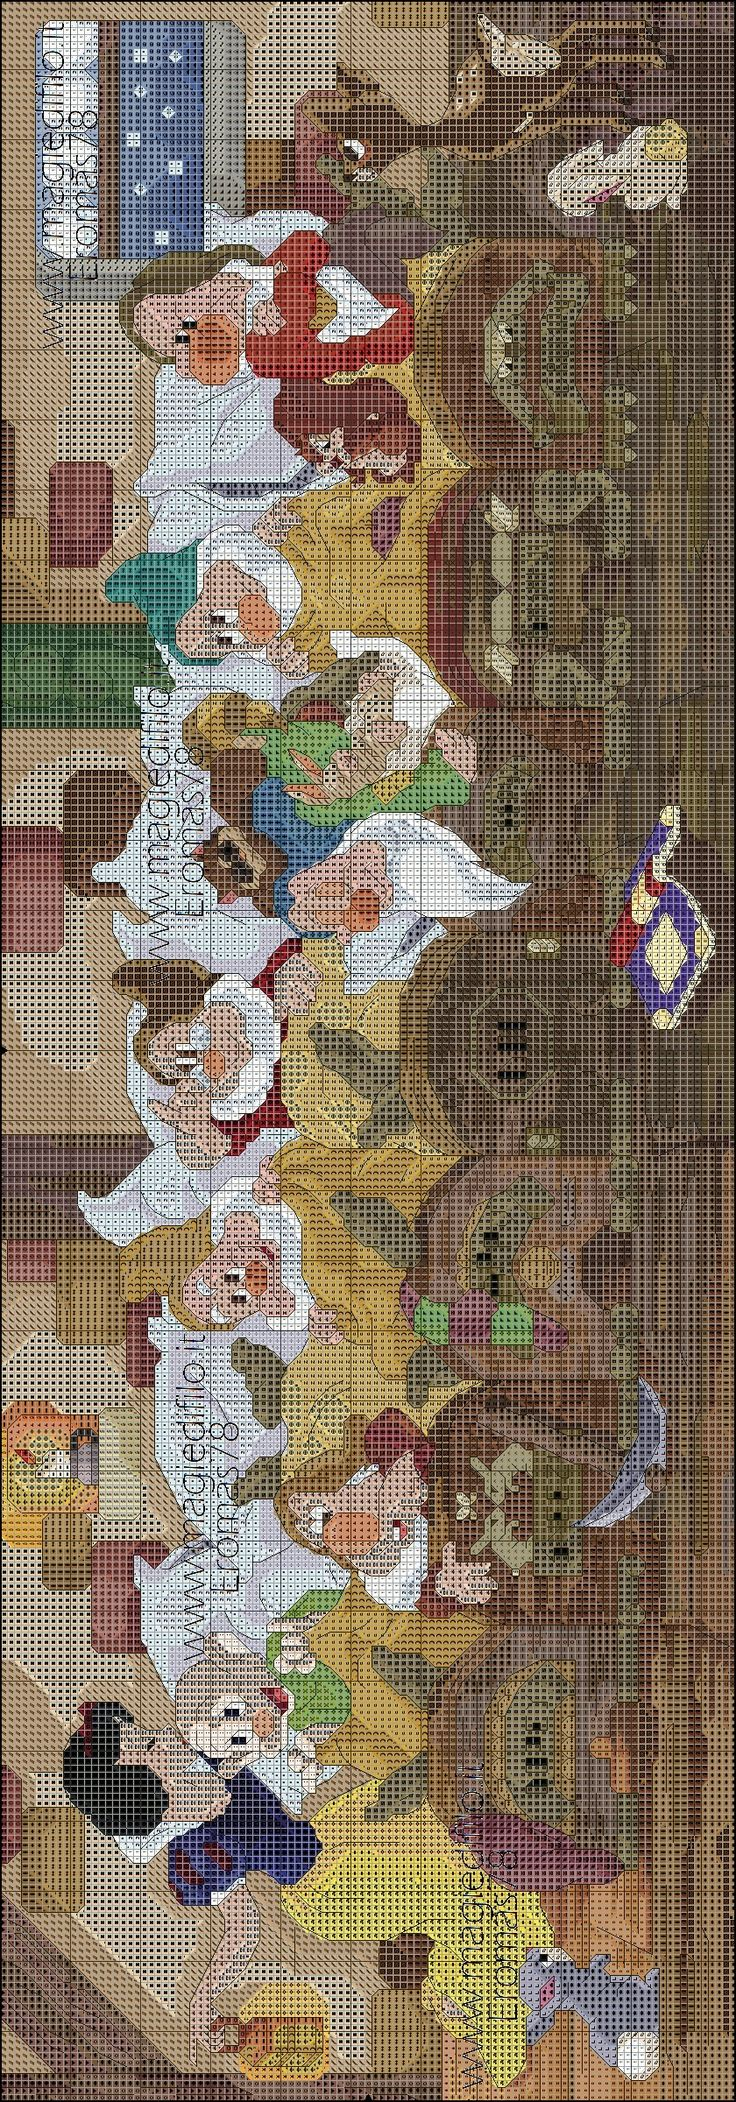 Snow White And The Seven Dwarfs -  Saved from www.magiedifilo.it (No color chart was provided)